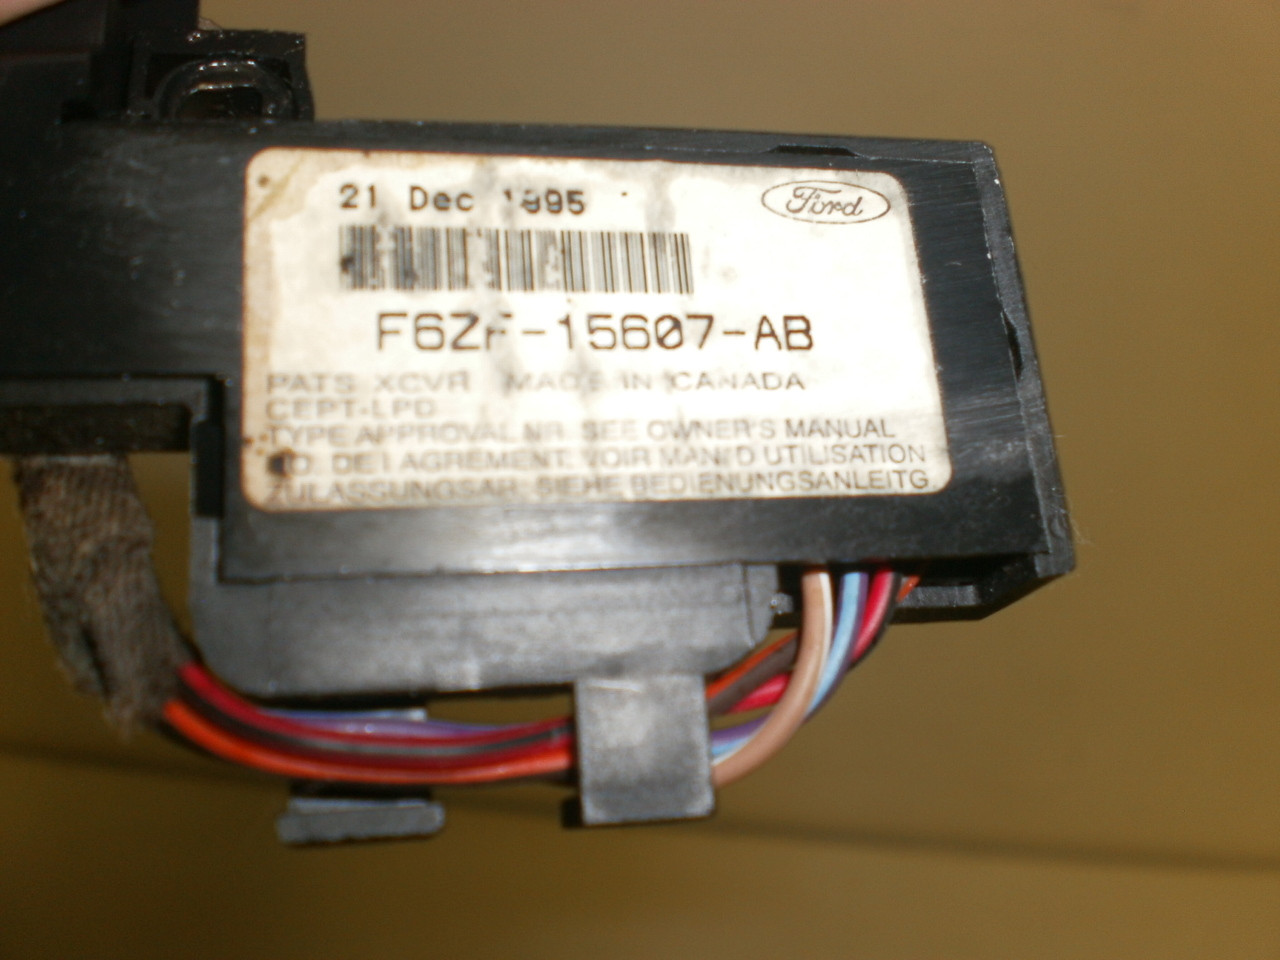 1997 Ford Pats Transceiver Mustang Theft